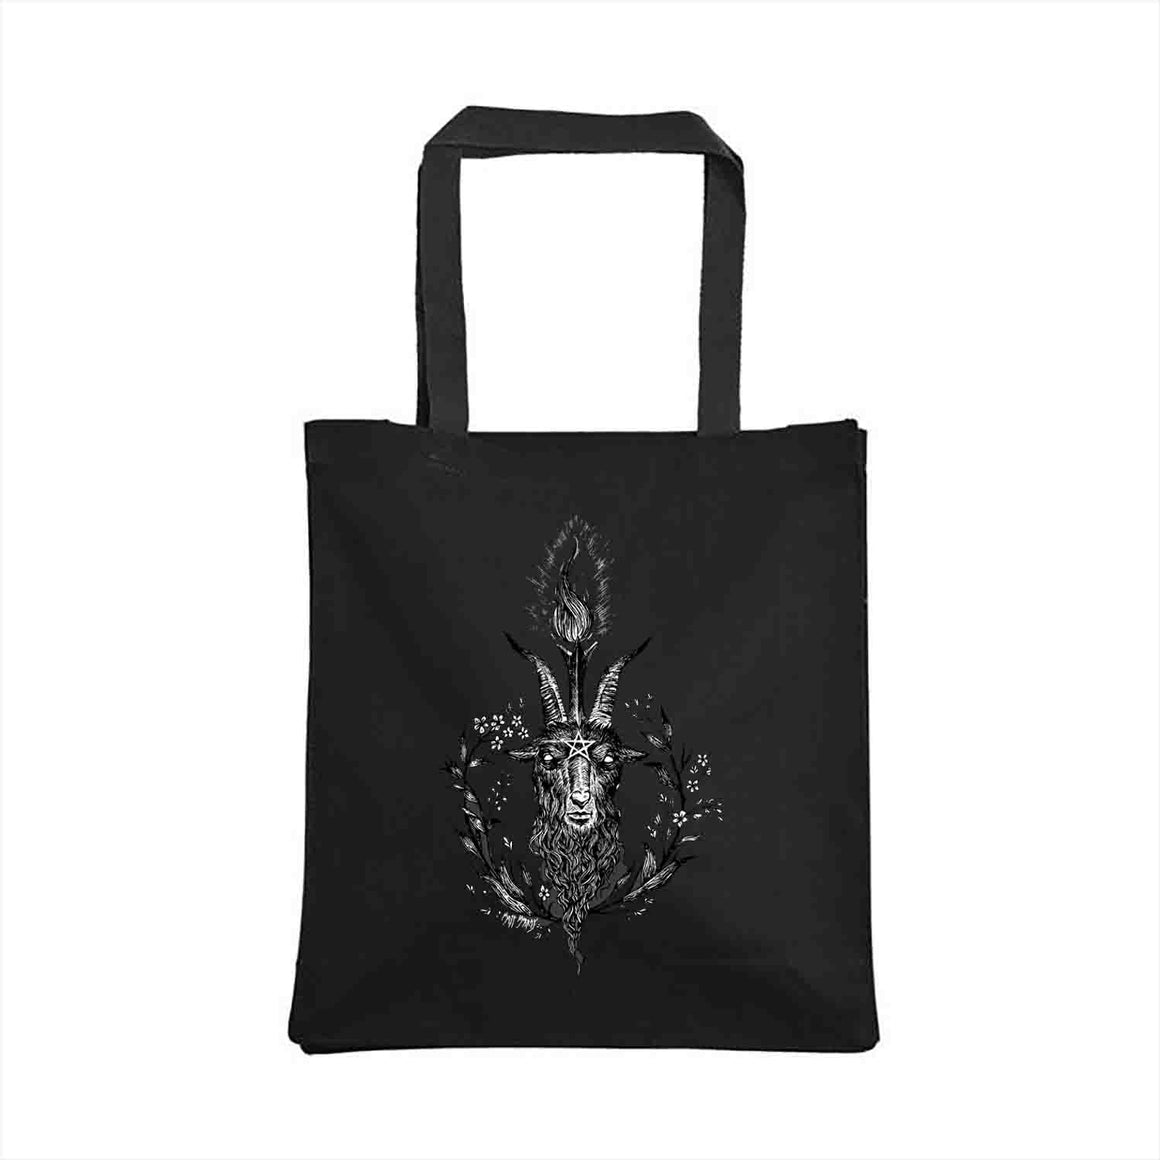 Baphomet Tote Bag design by The Black Veil Studio